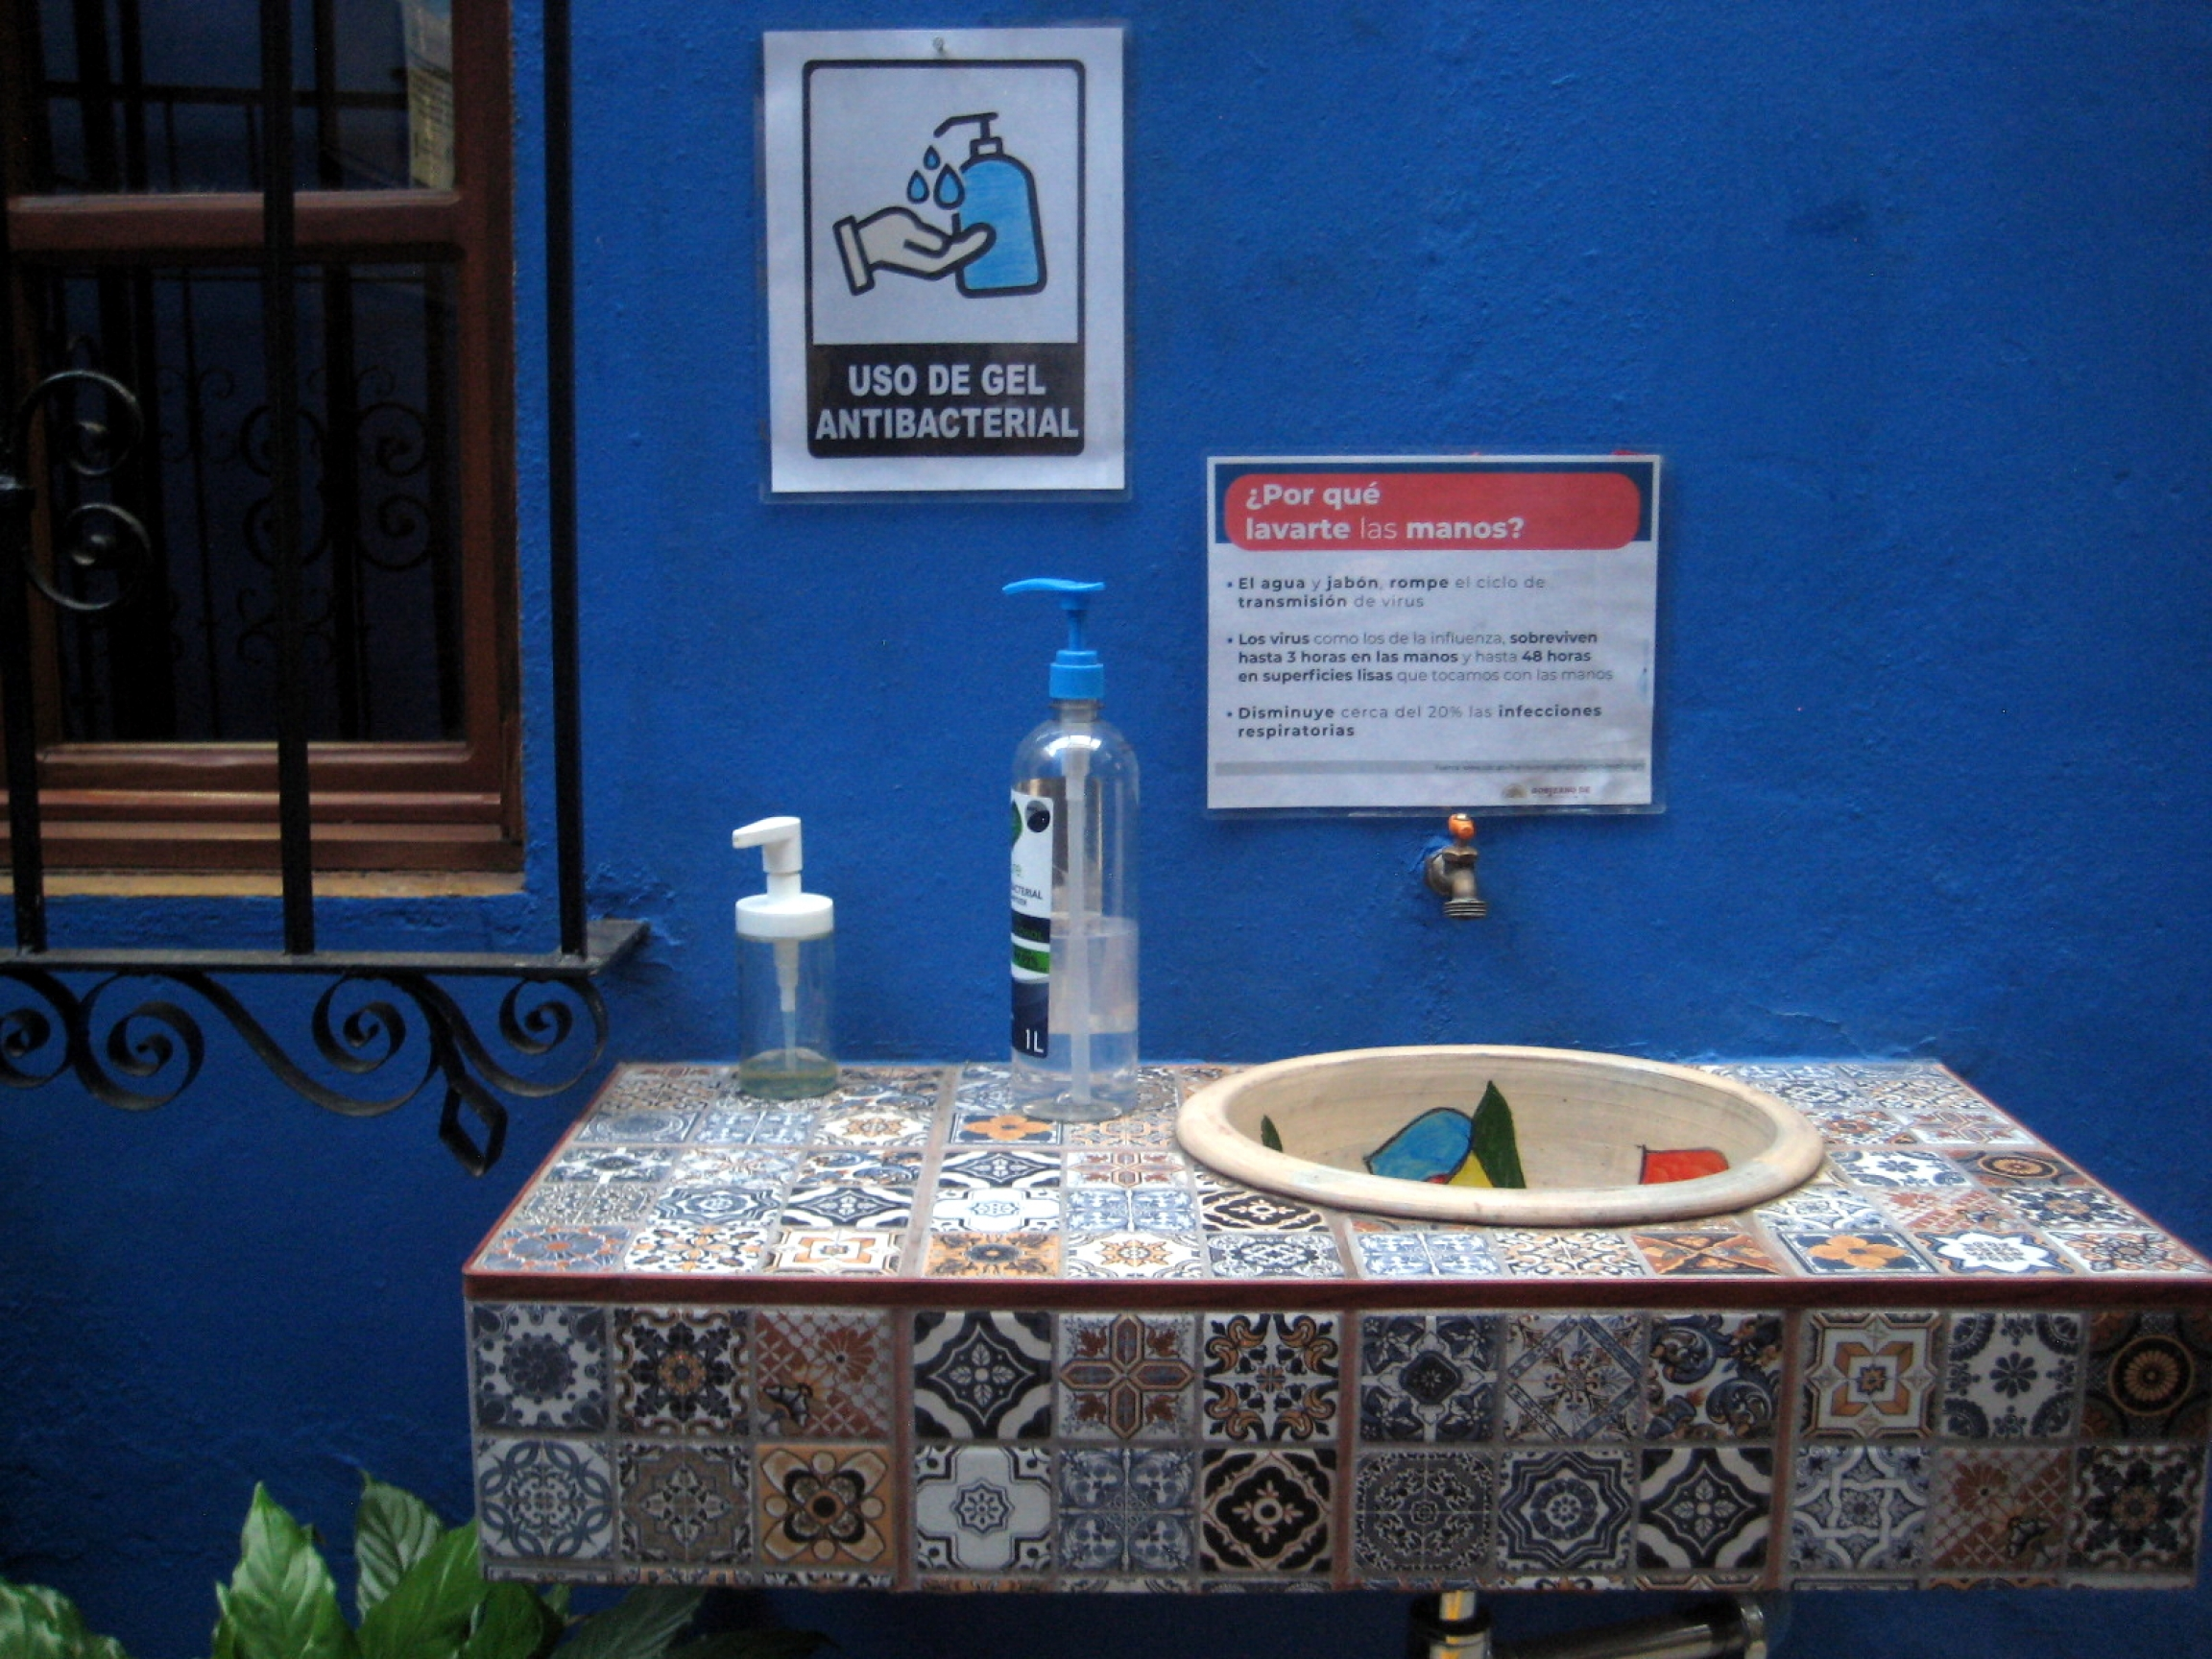 Hygiene station at the entrance of Las Golondrinas Hotel include a sink for hand-washing and a bottle with antibacterial gel.